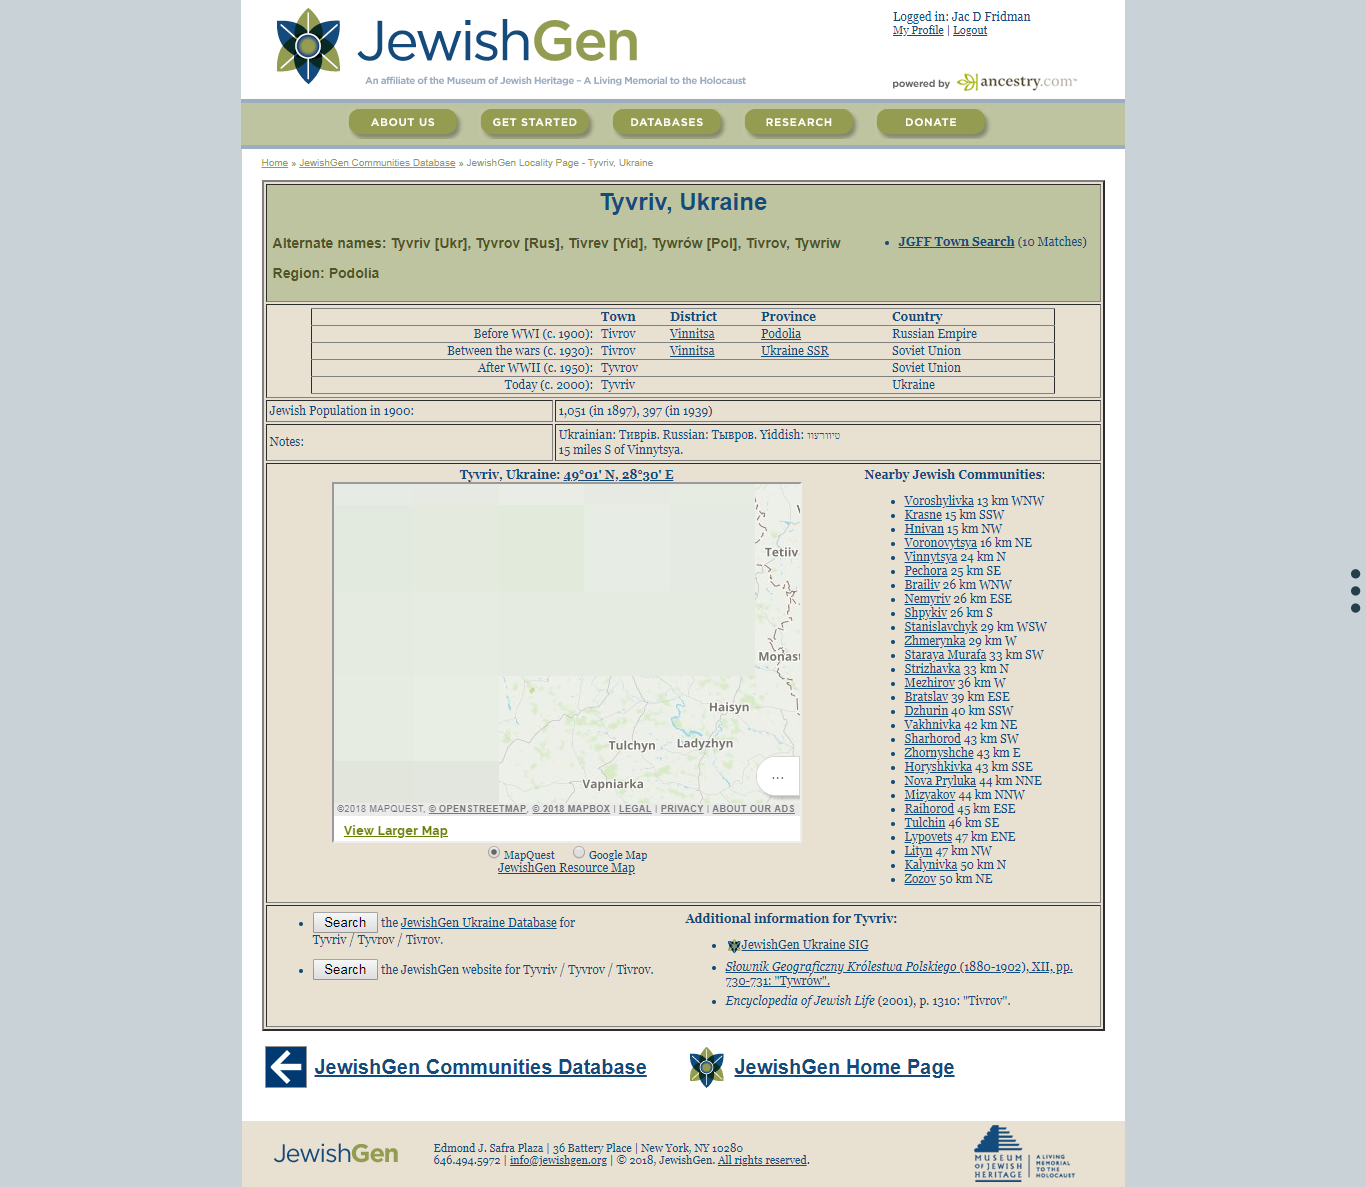 screencapture-jewishgen-org-Communities-community-php-2018-09-02-23_25_37.png